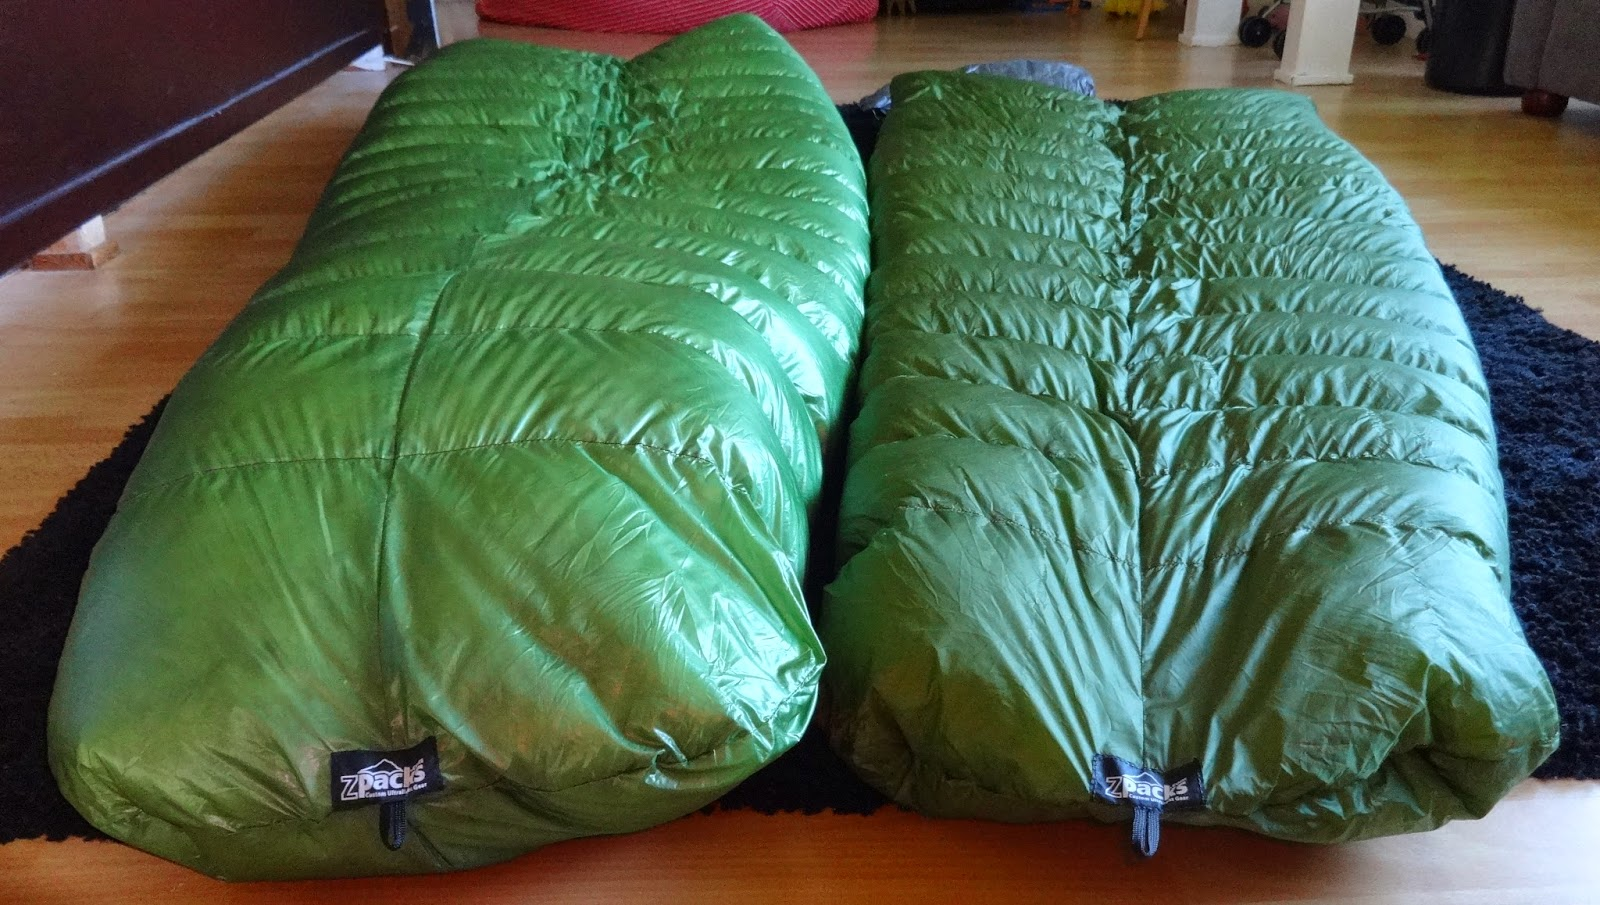 Zpacks Sleeping Bags Double Review 40 Degree Long Term And 20 First Impressions